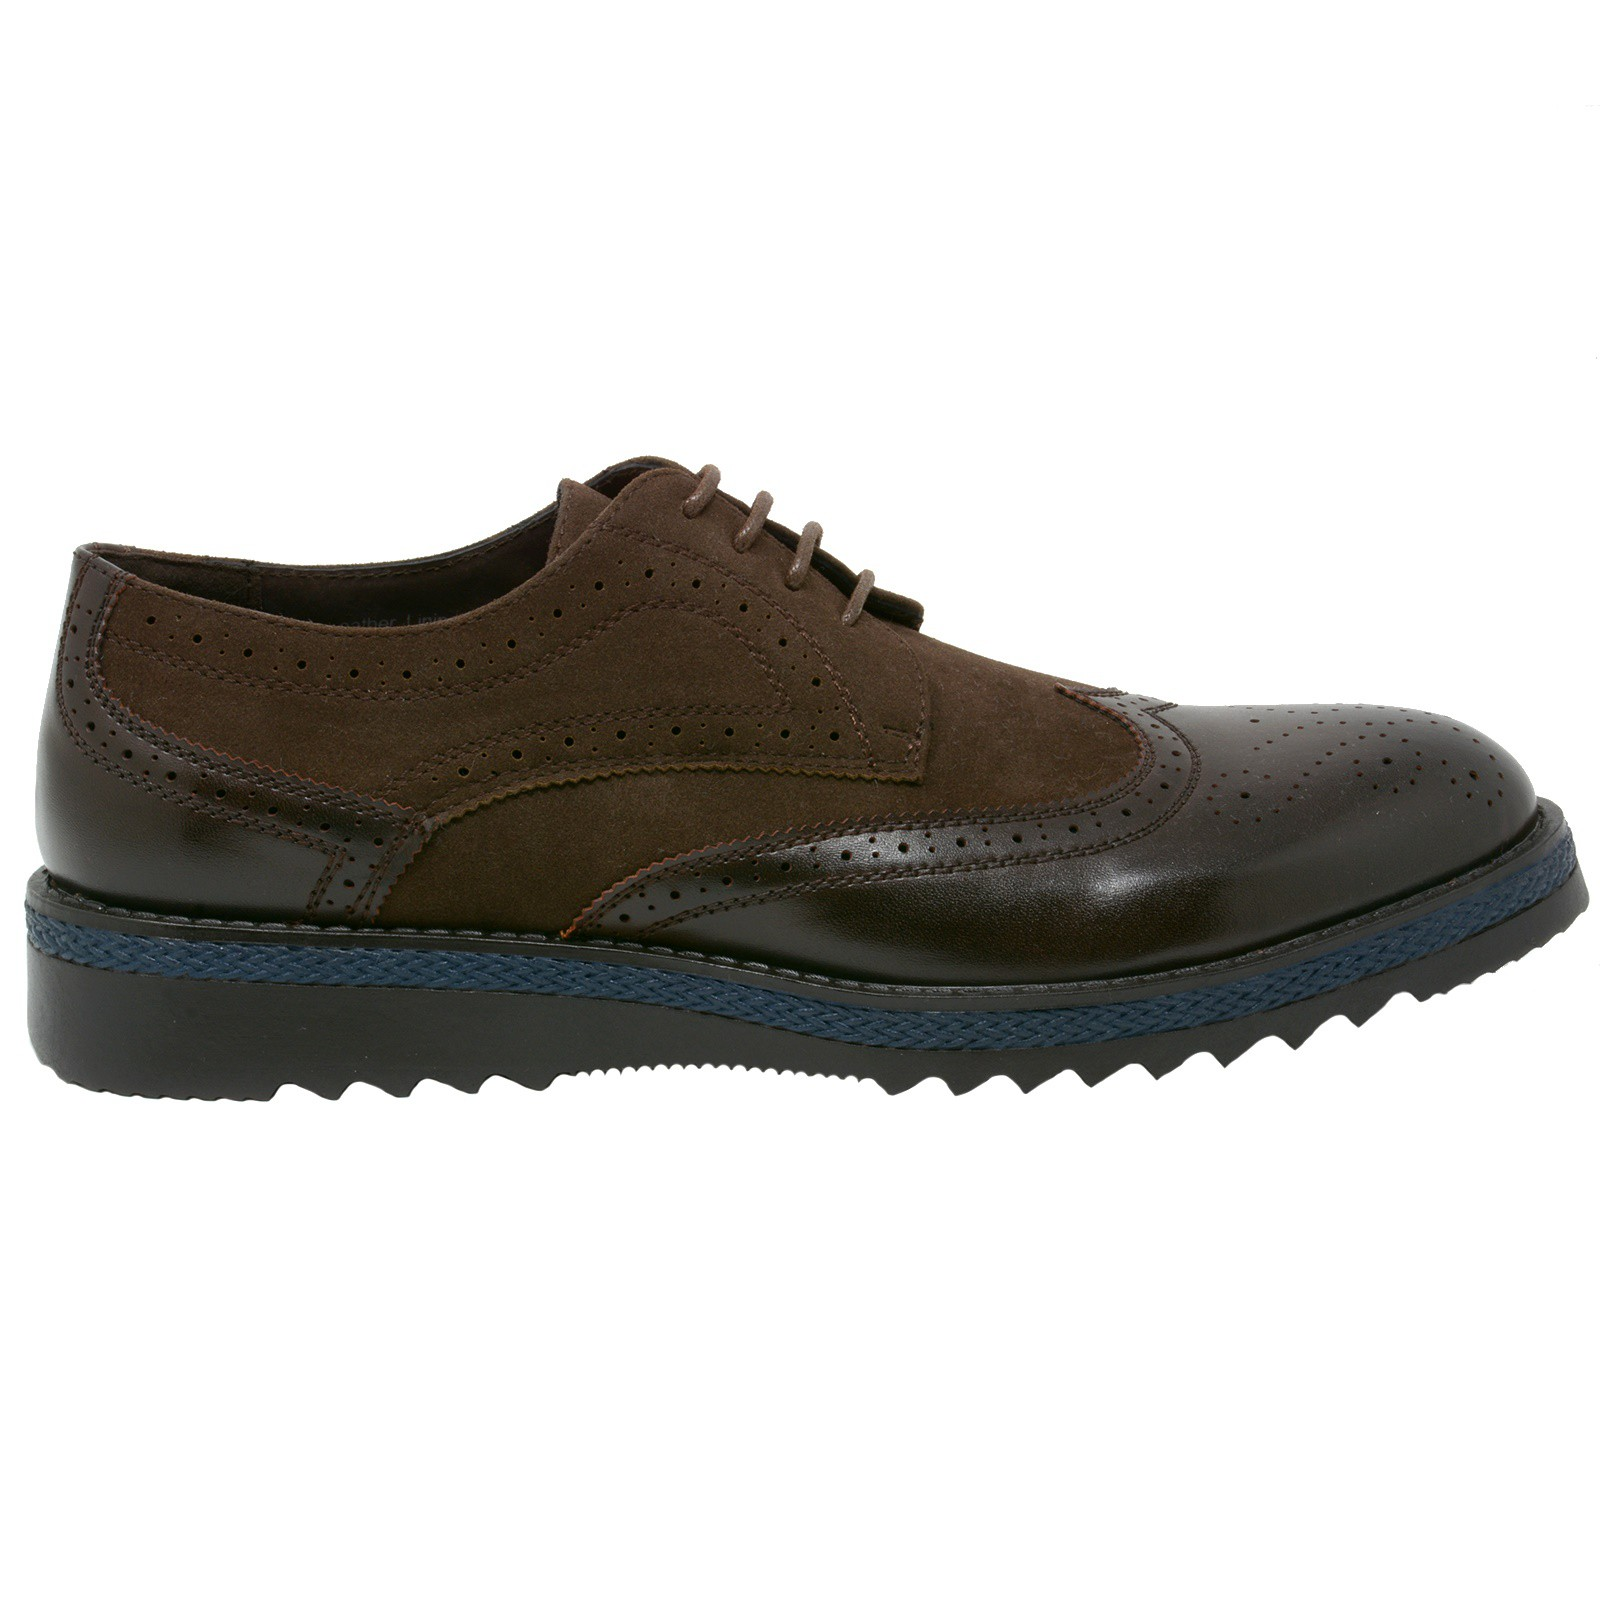 Alpine-Swiss-Alec-Mens-Wingtip-Shoes-1-5-Ripple-Sole-Leather-Insole-amp-Lining thumbnail 12